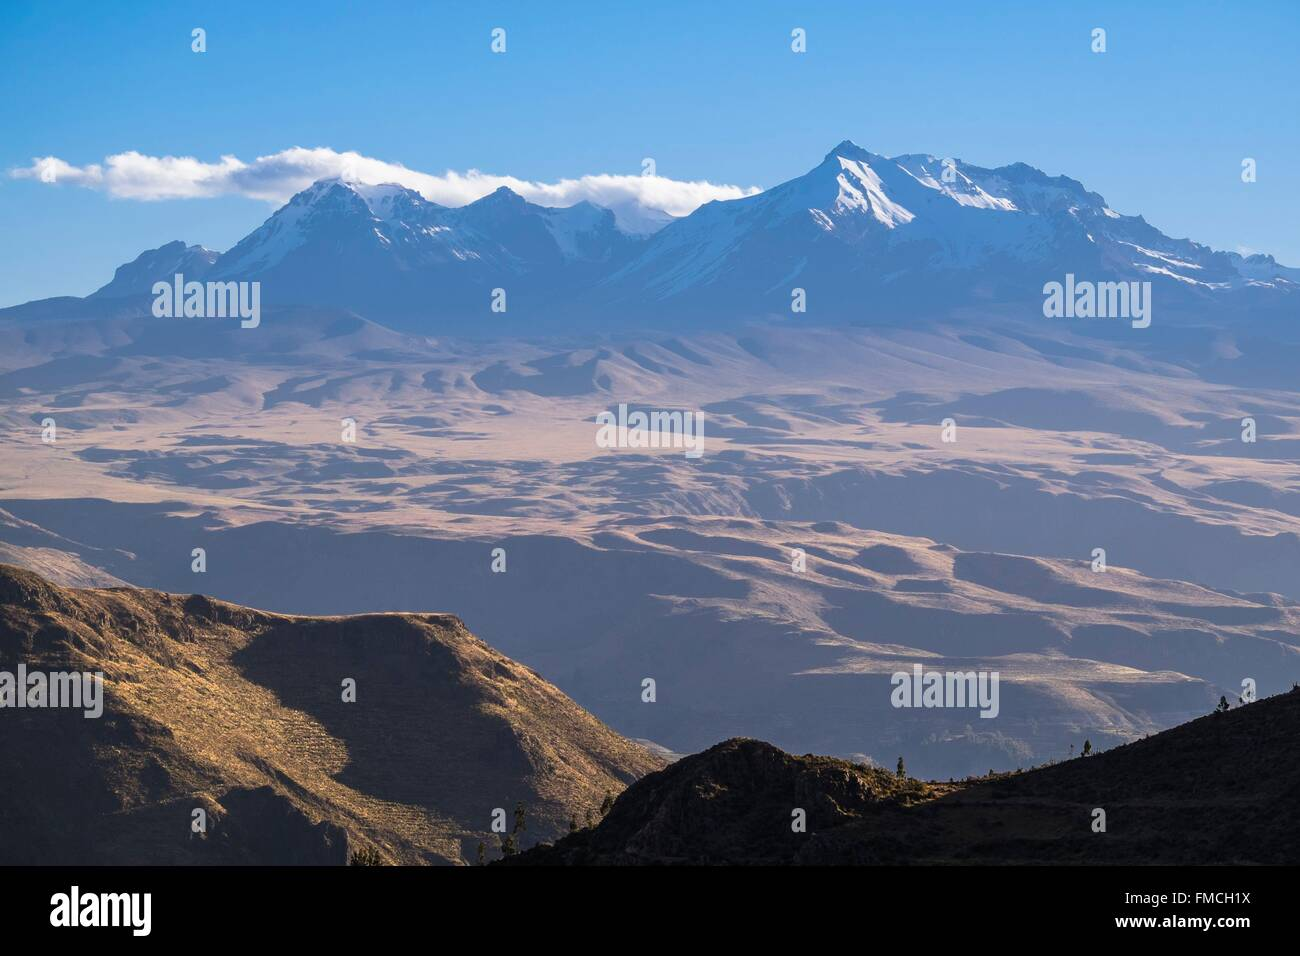 Peru, Arequipa Province, summits overlooking Colca valley - Stock Image